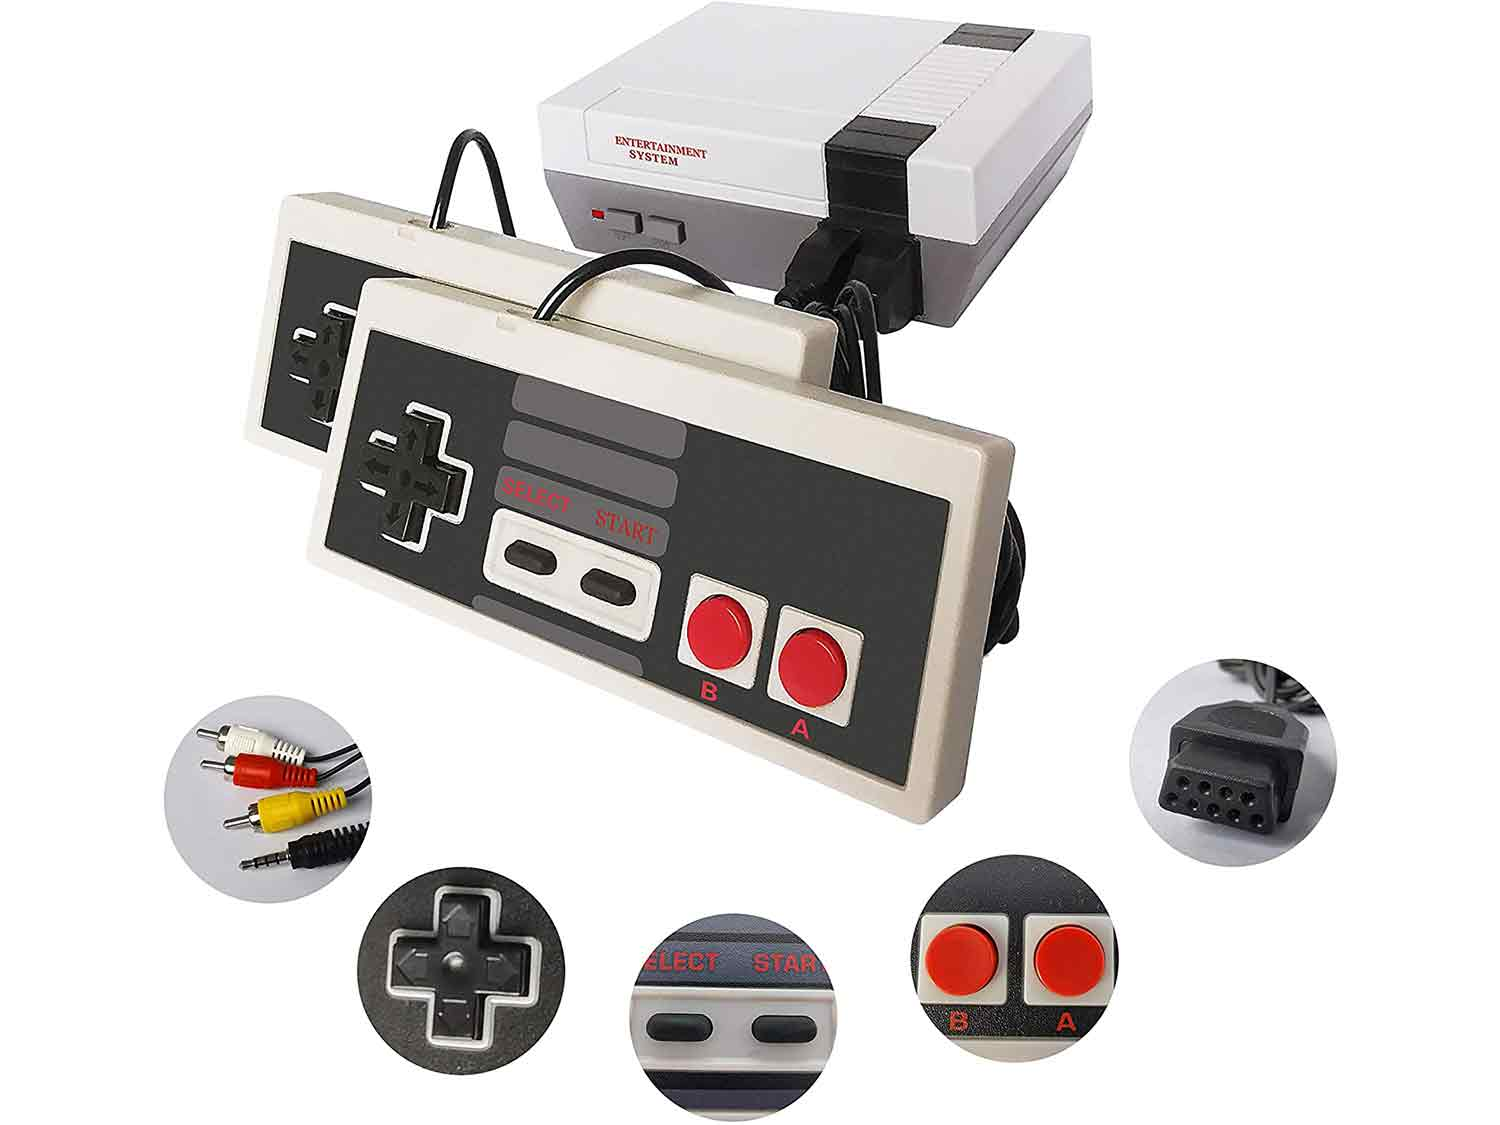 Classic Mini Retro Game Console with Built-in 620 Games and 2 Classic Controllers, AV Output Video Games for Kids, Children Gift, Birthday Gift Happy Childhood Memories